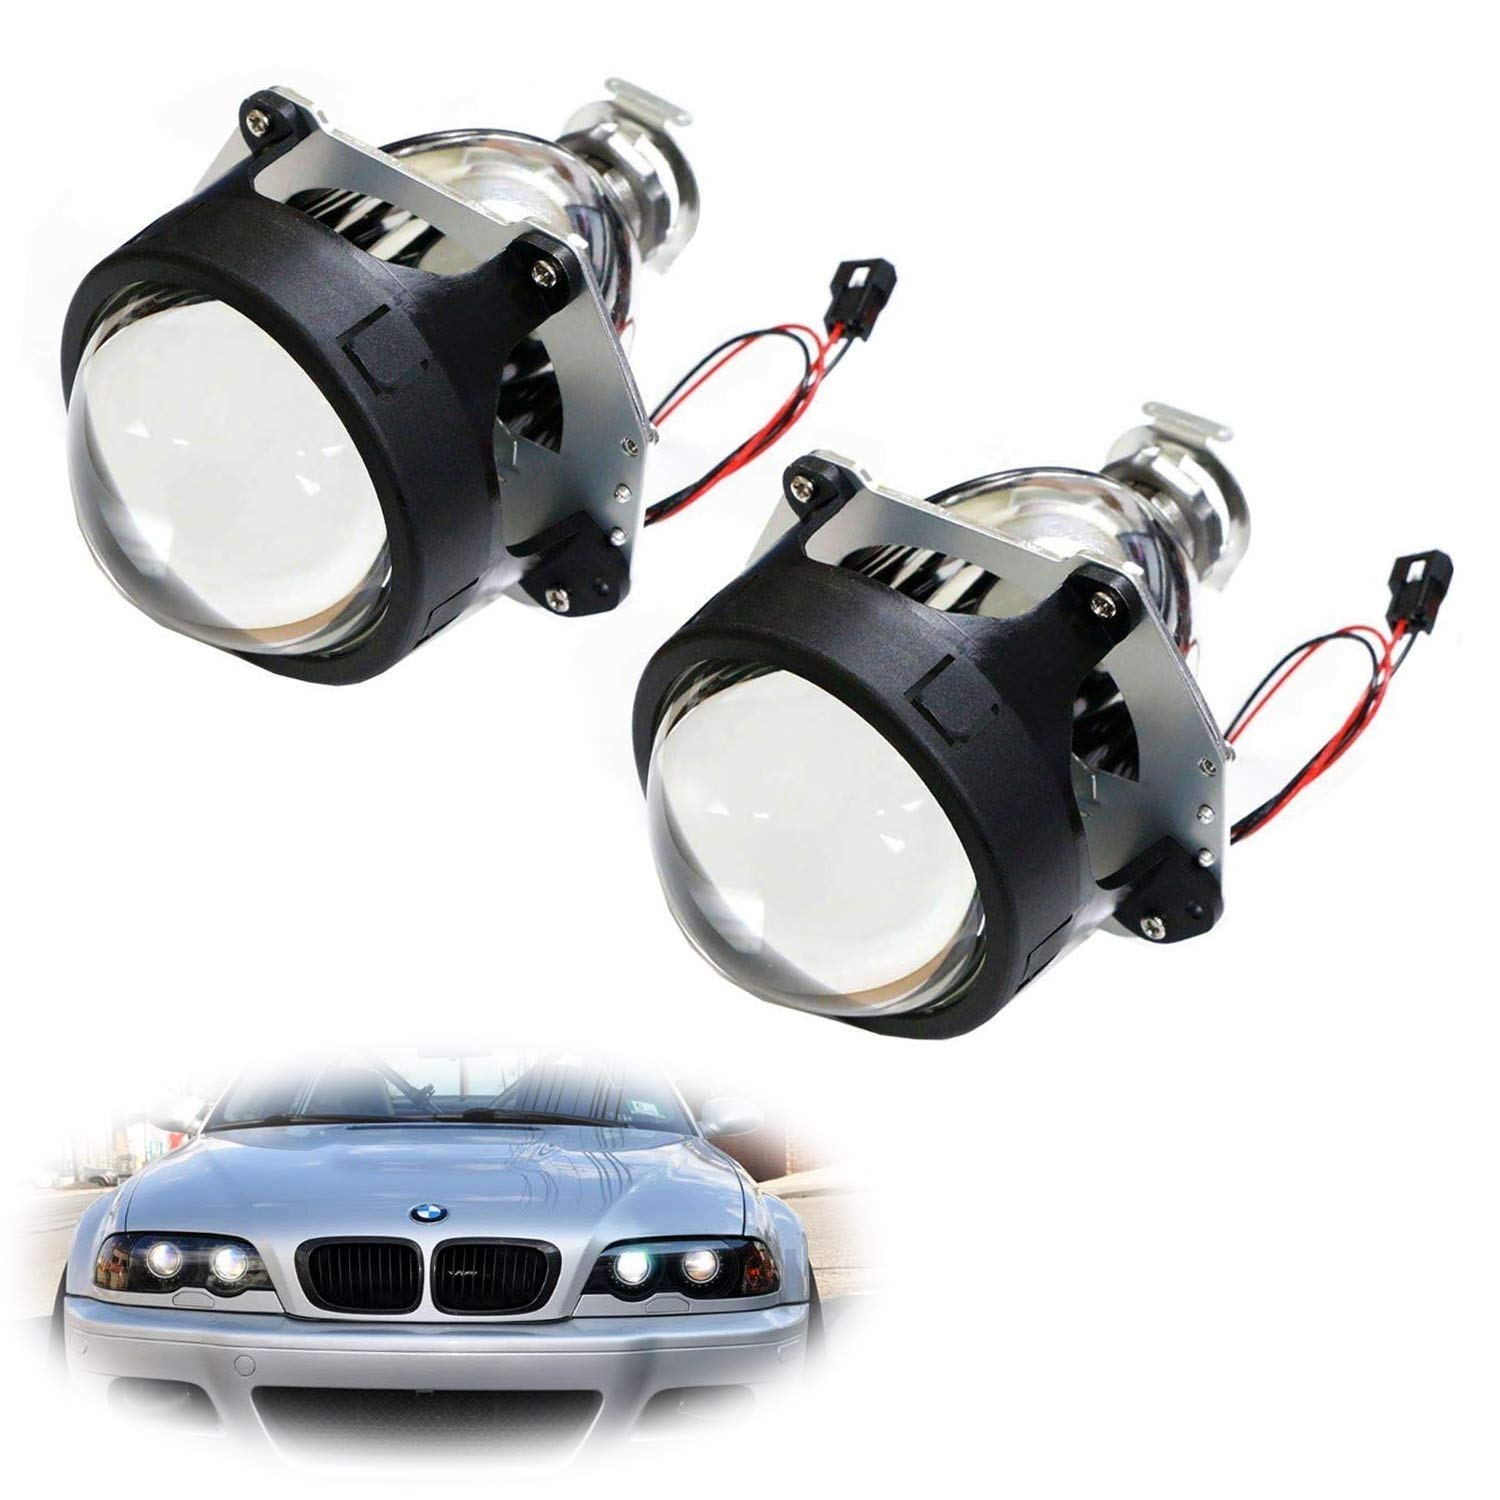 Ijdmtoy 2 30 H1 Bi Xenon Hid Projector Lens For Porsche Cayenne Headlight Wiring Harness Headlights Retrofit Custom Headlamps Conversion Automotive